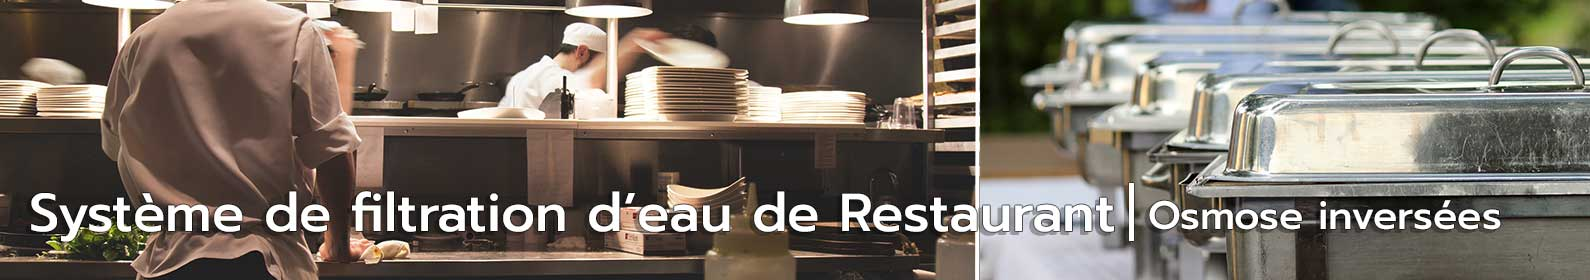 applications-de-traitement-de-l-eau-par-osmose-inverse-restaurants.jpg